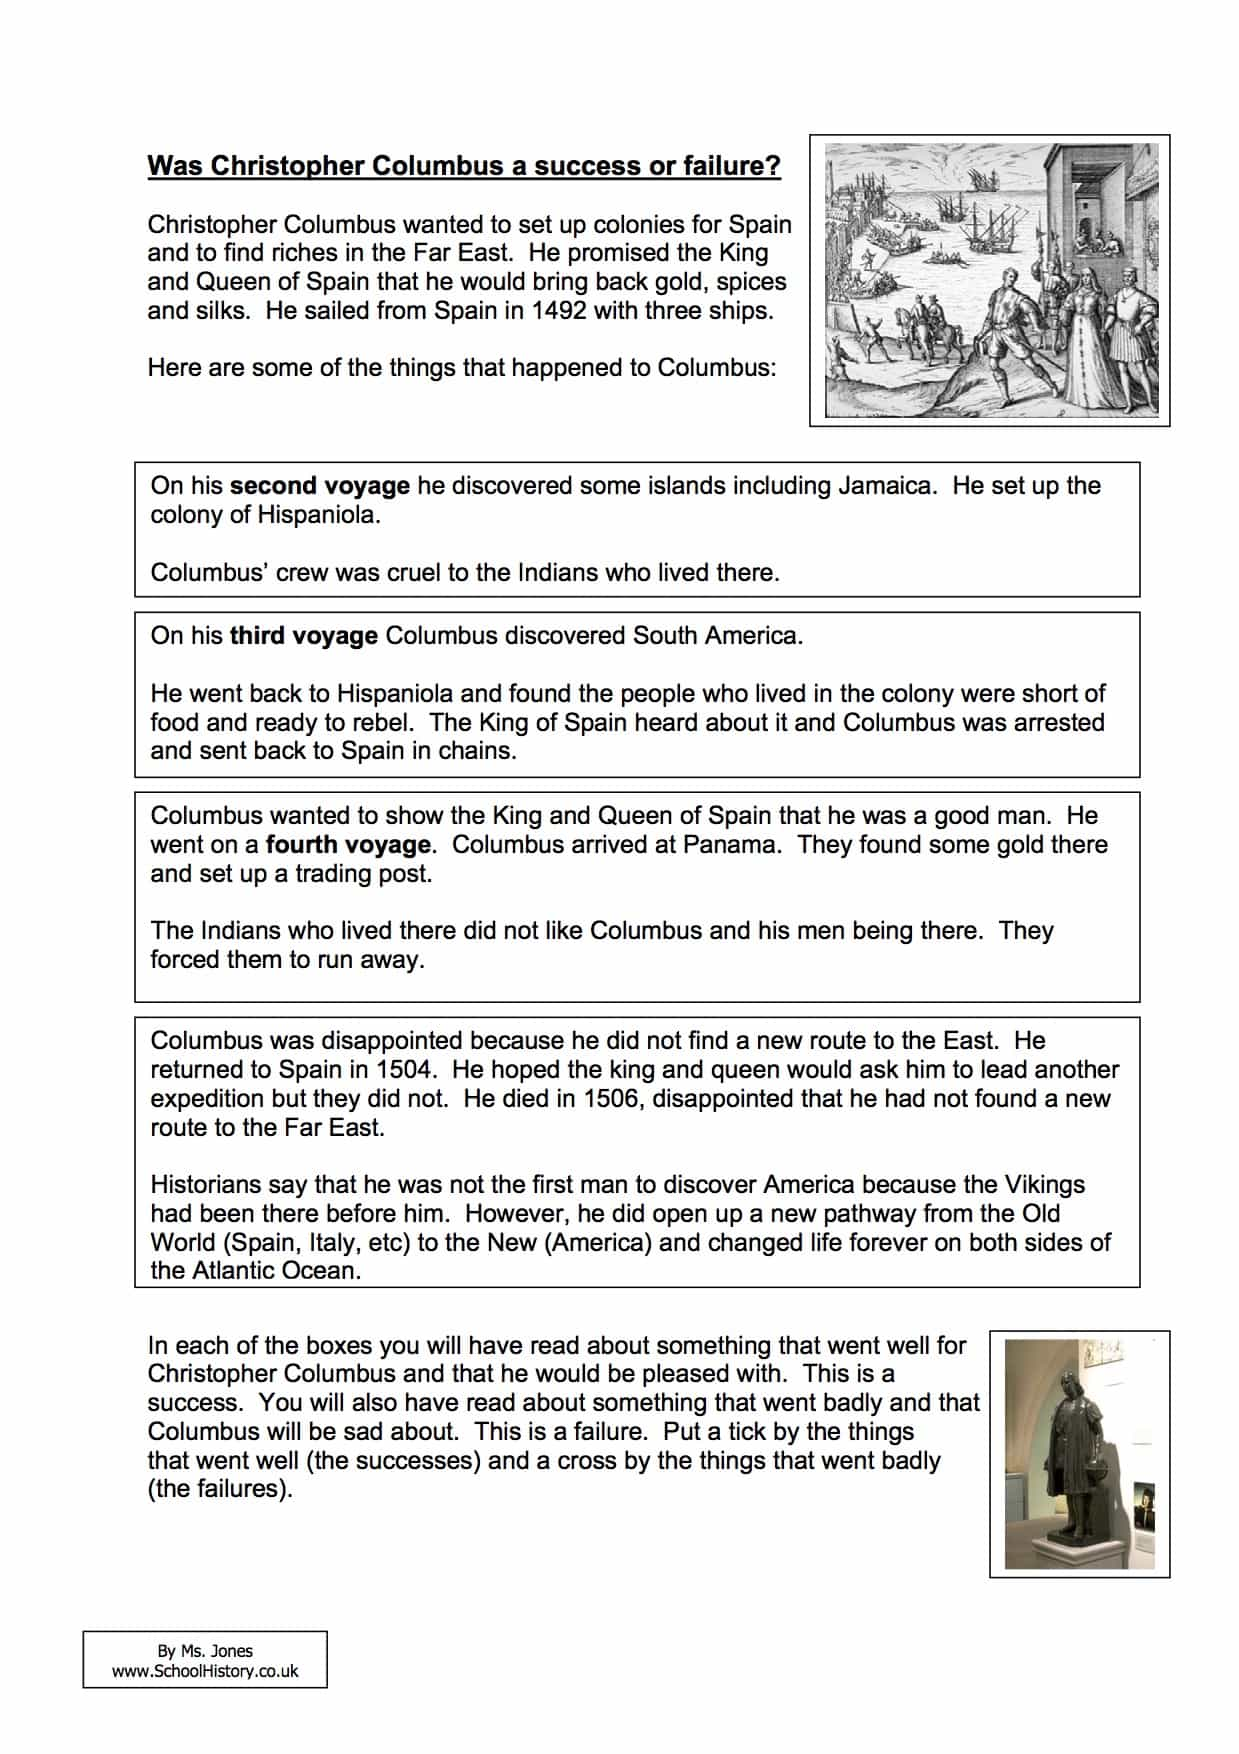 hight resolution of Was Christopher Columbus a Success or Failure Worksheet - Year 8/9